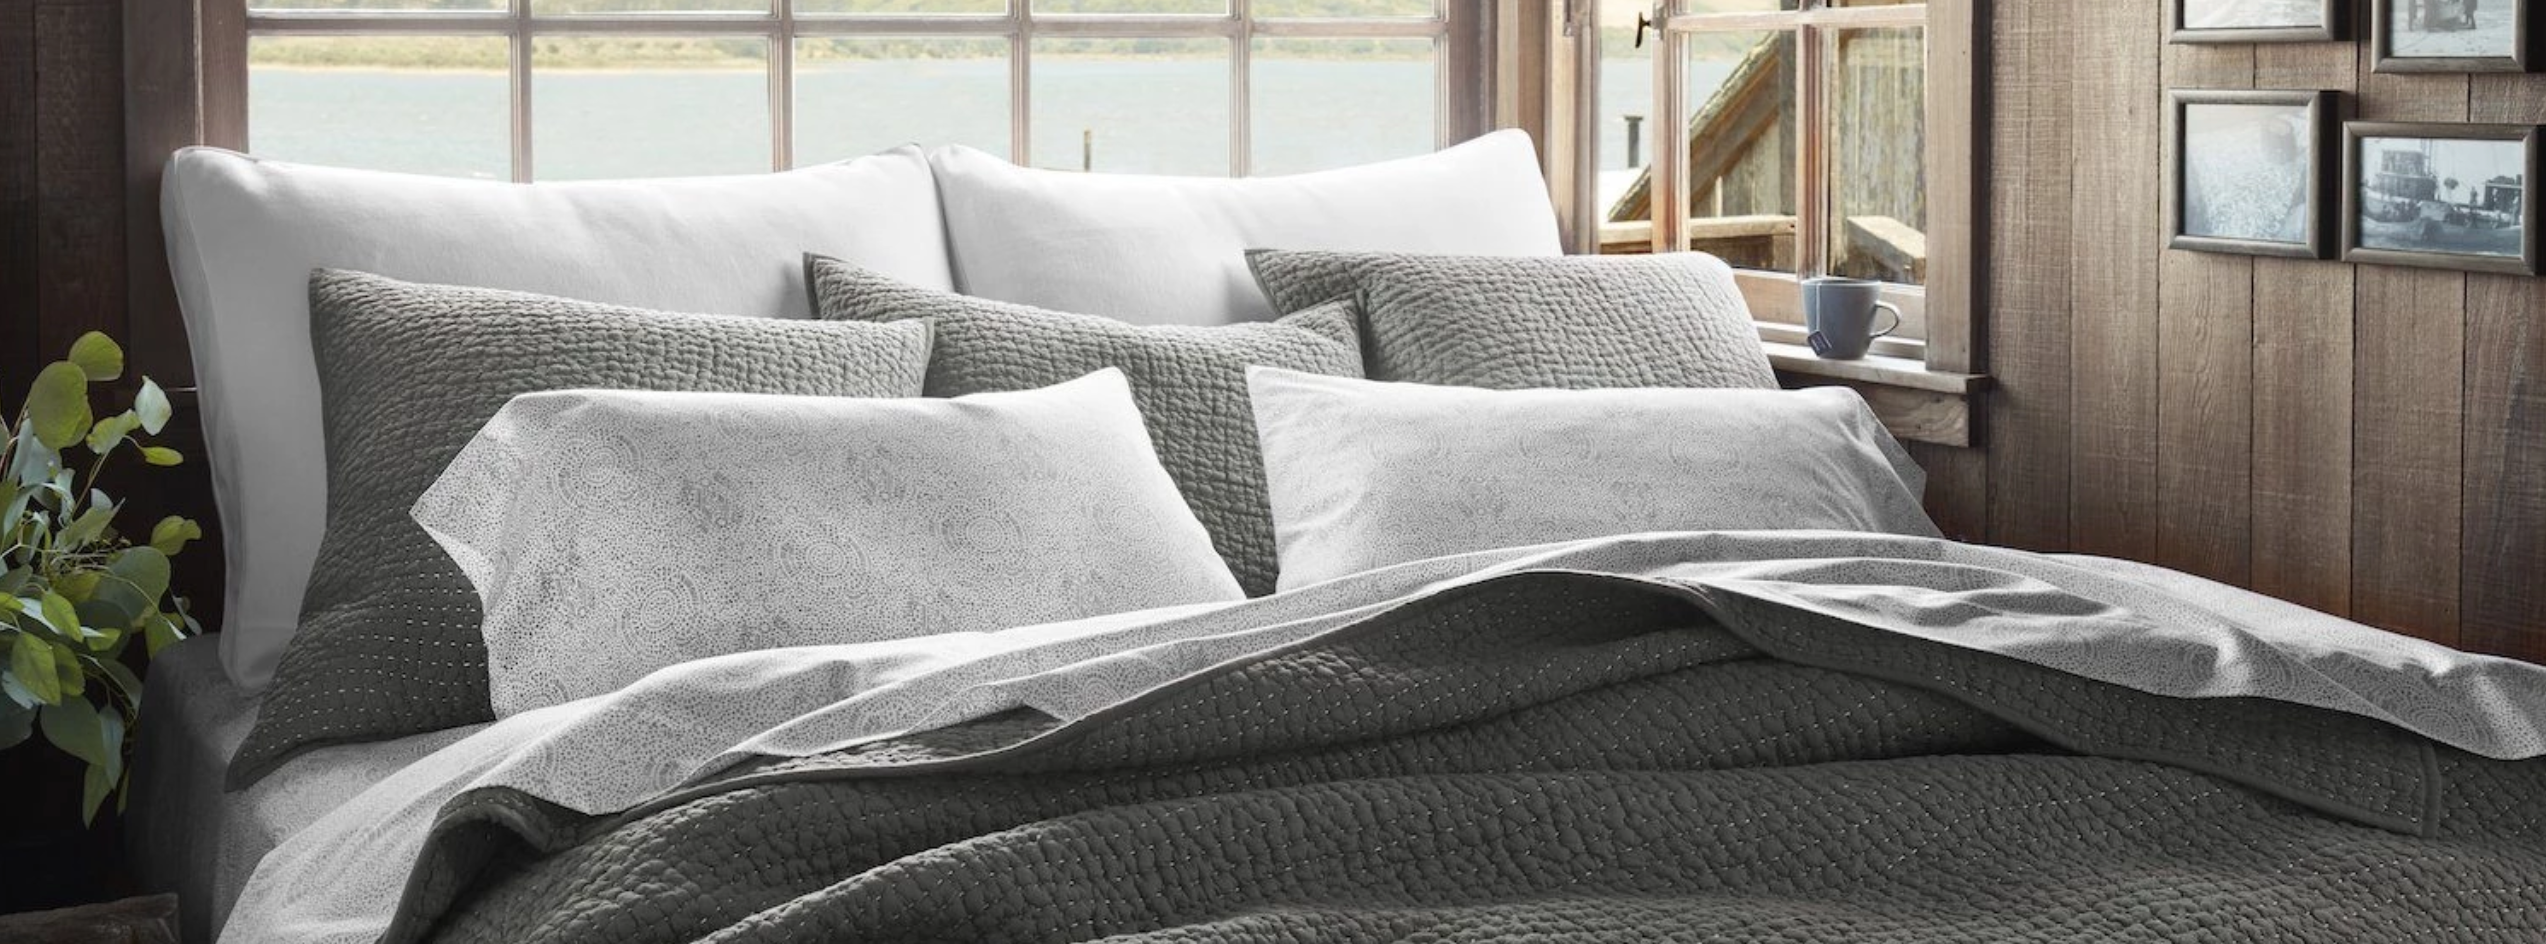 Bedding Brands With Organic Sheets